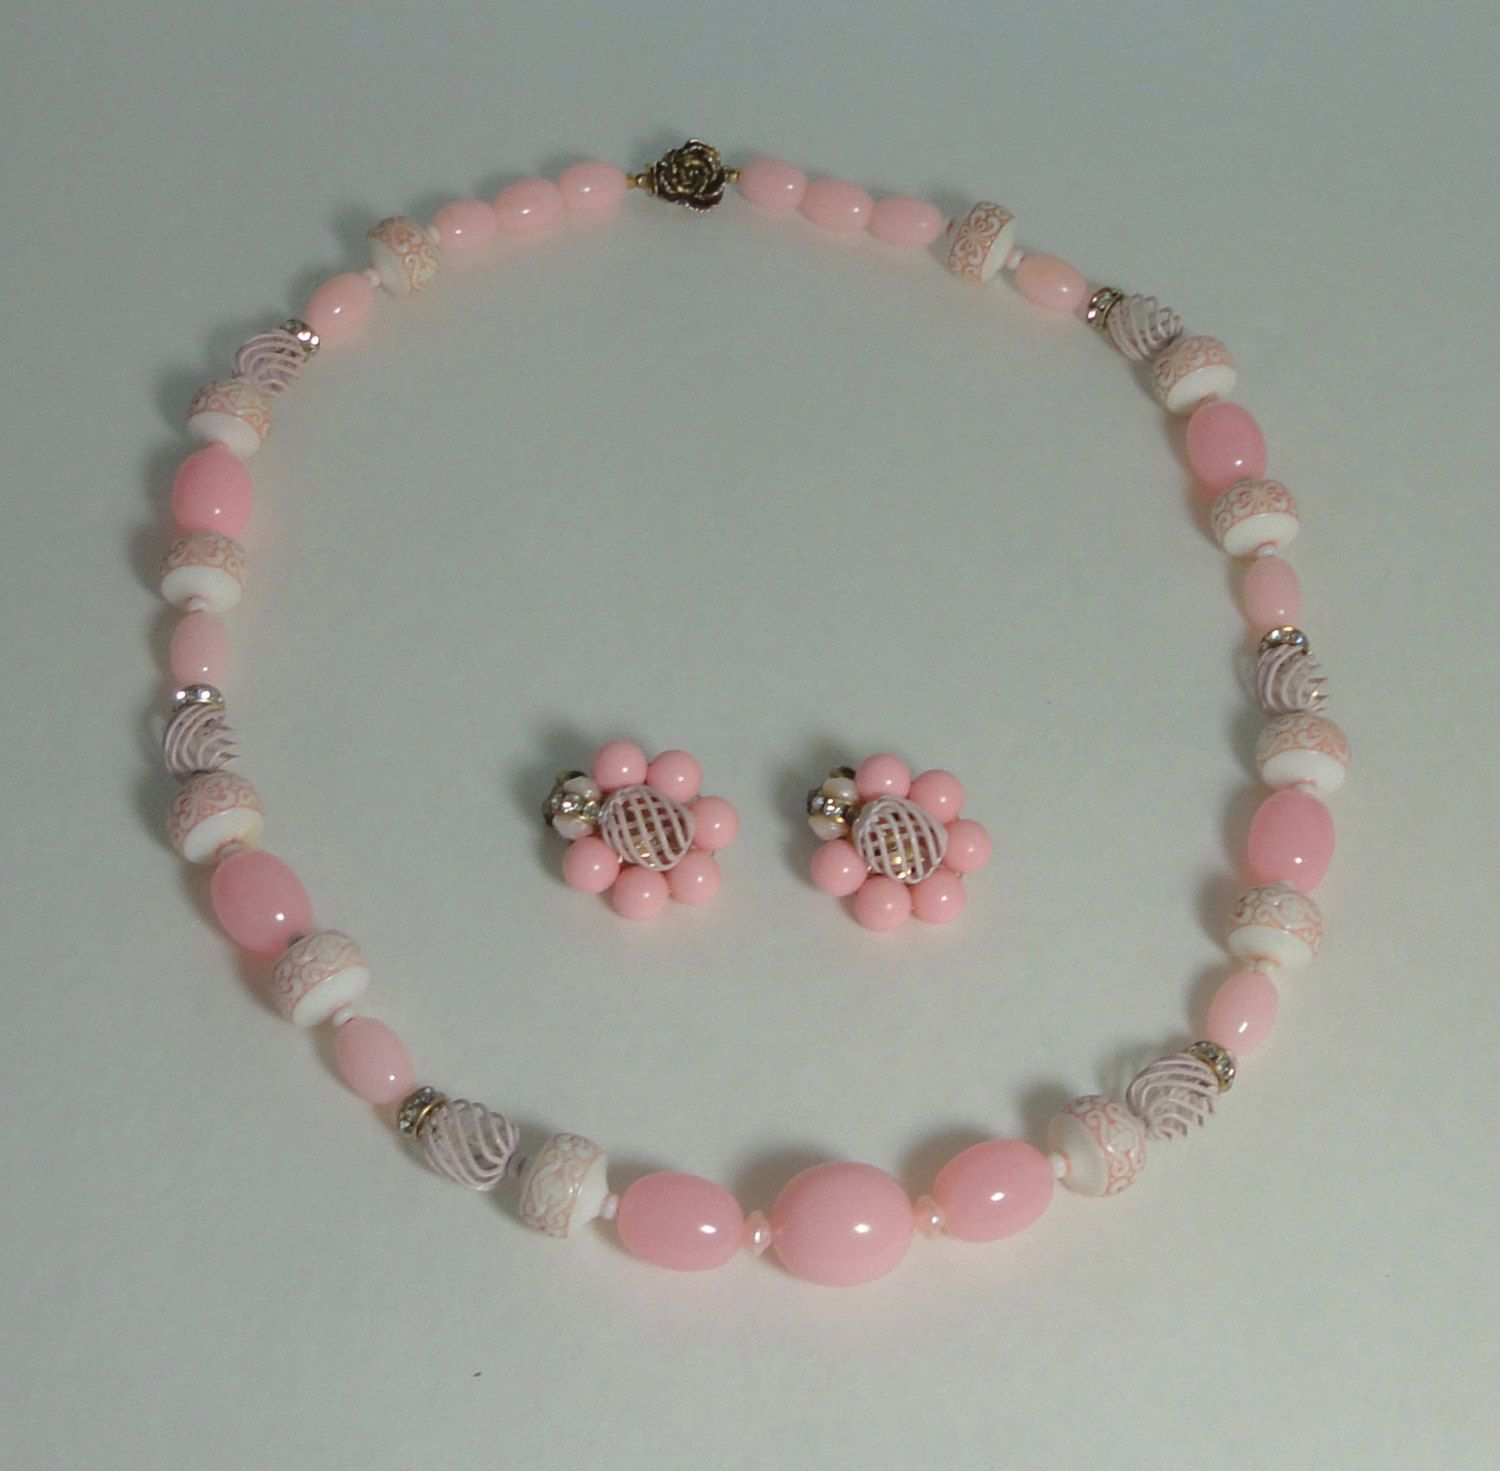 Vintage  Pink and White Lucite with Cage metal Beads Necklace/Earrings Set. by Cosasraras on Etsy